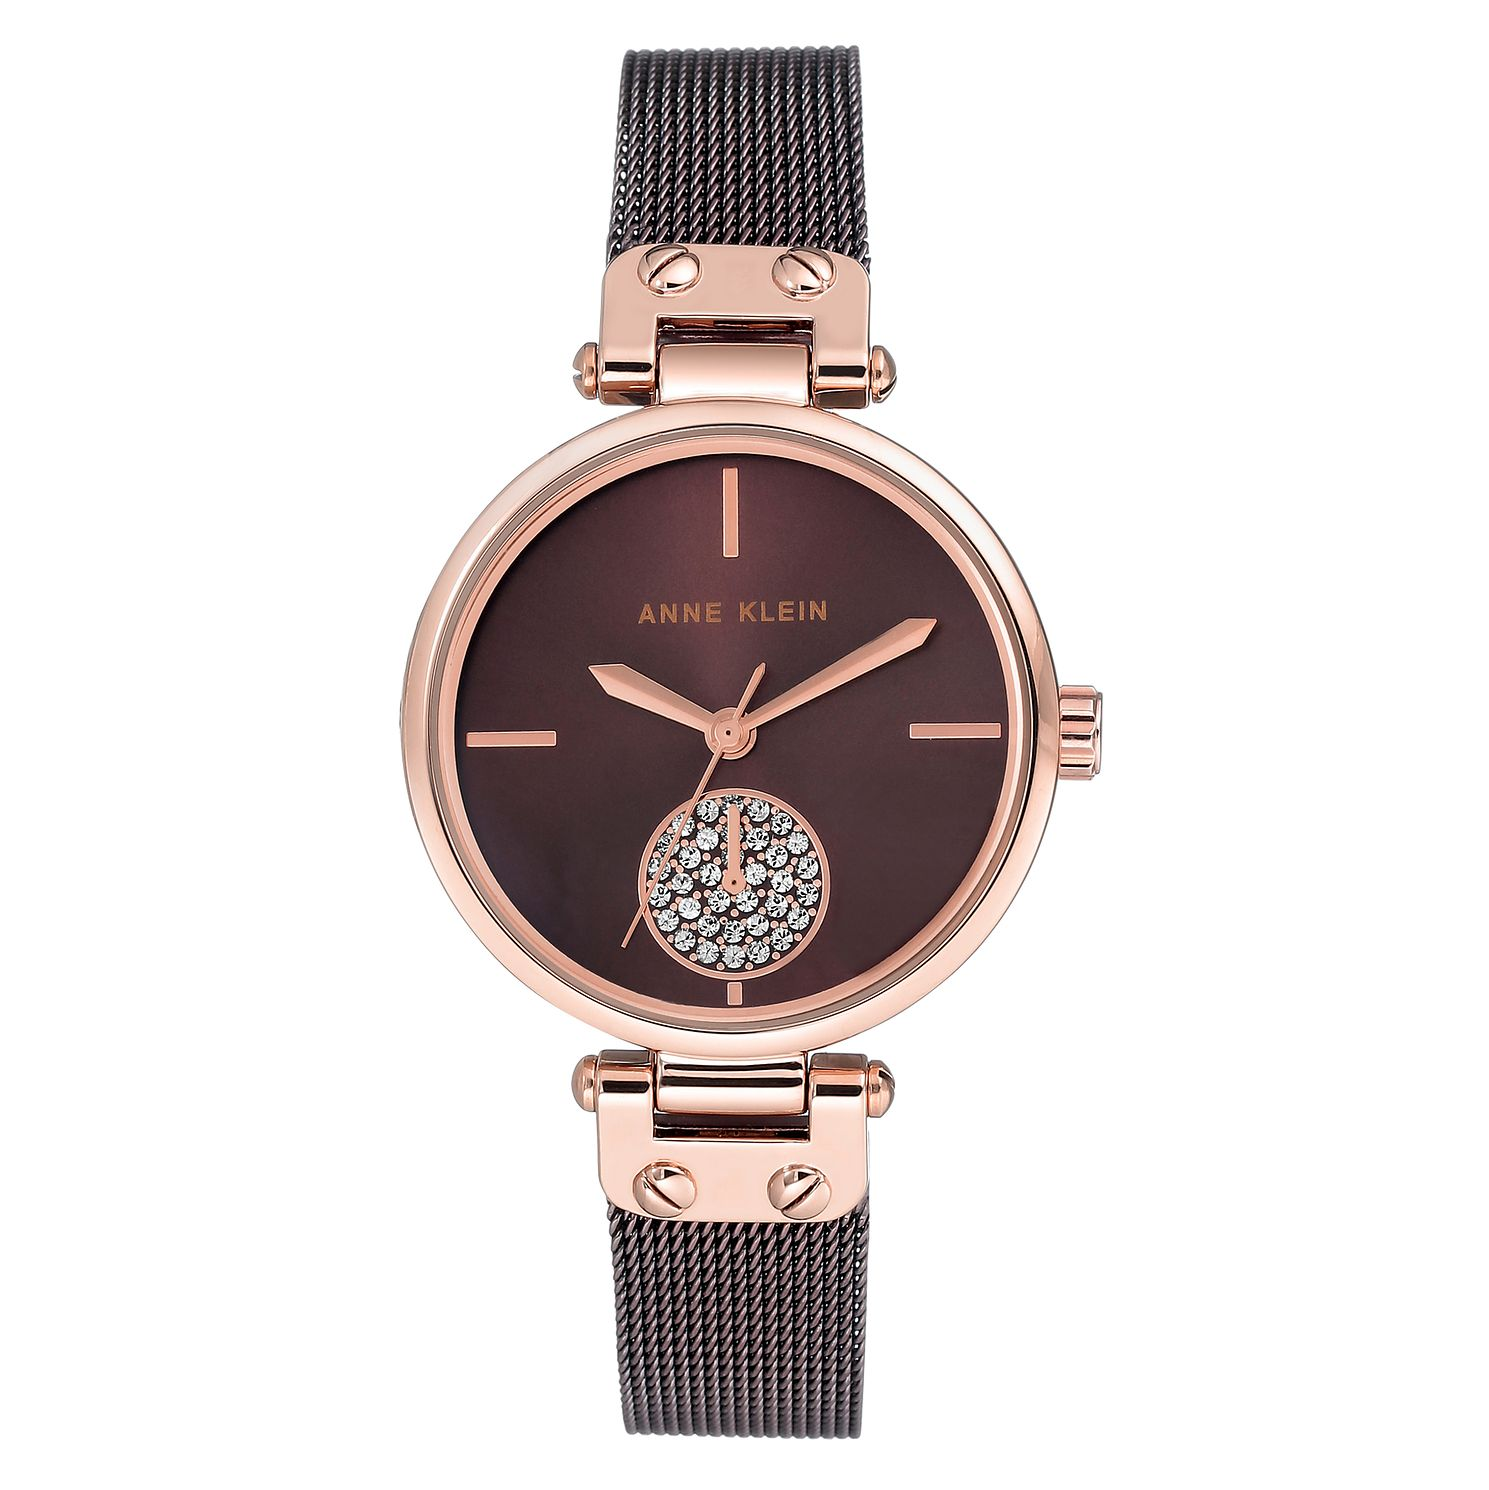 Anne Klein Ladies' Rose Gold Case and Mesh Bracelet Watch - Product number 9790845